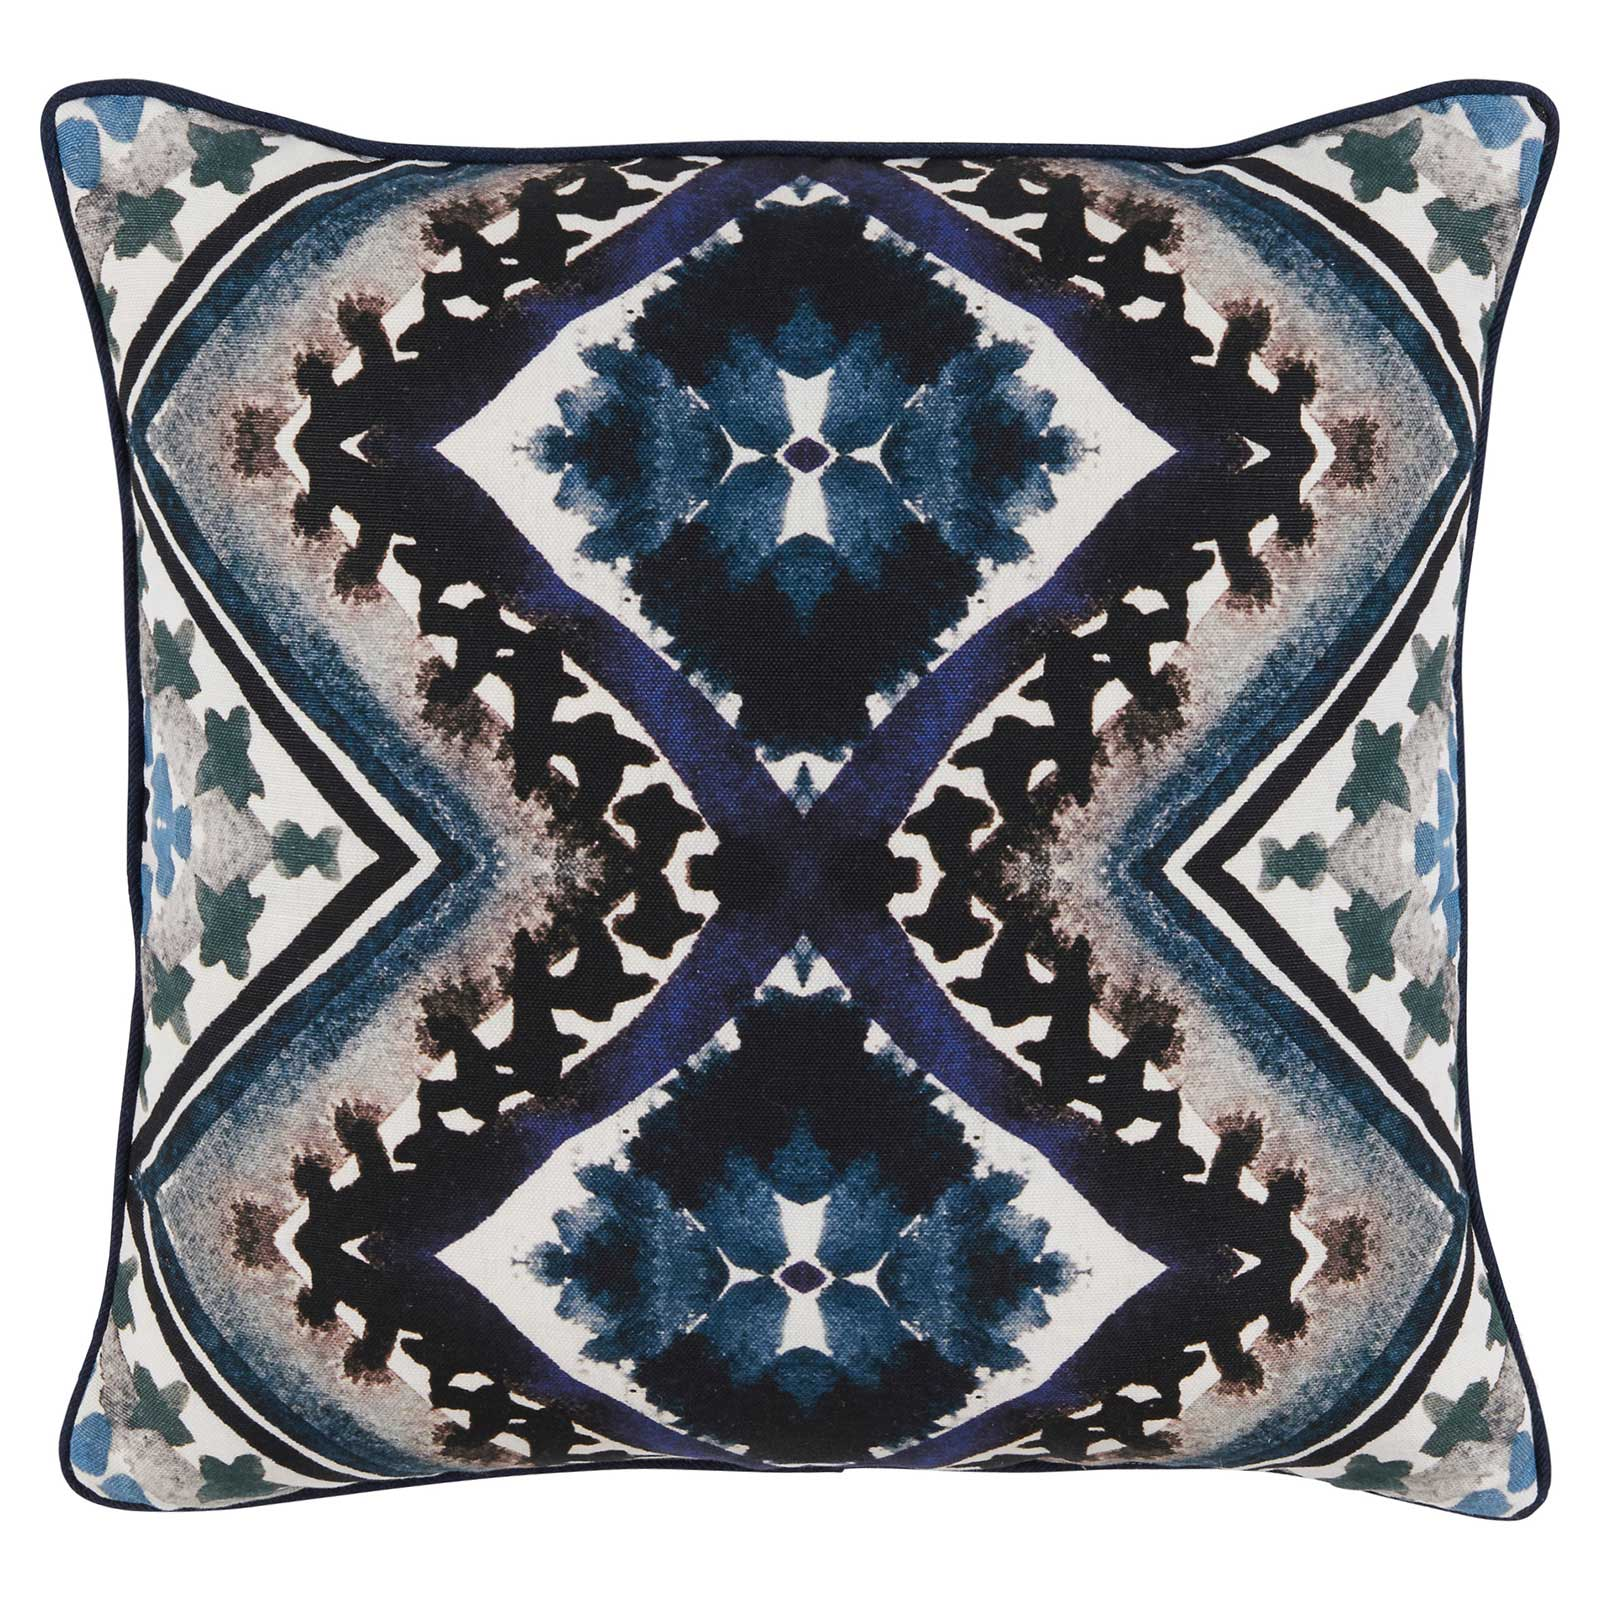 Ruba Global Modern Ink Indigo Diamond Pillow - 20x20